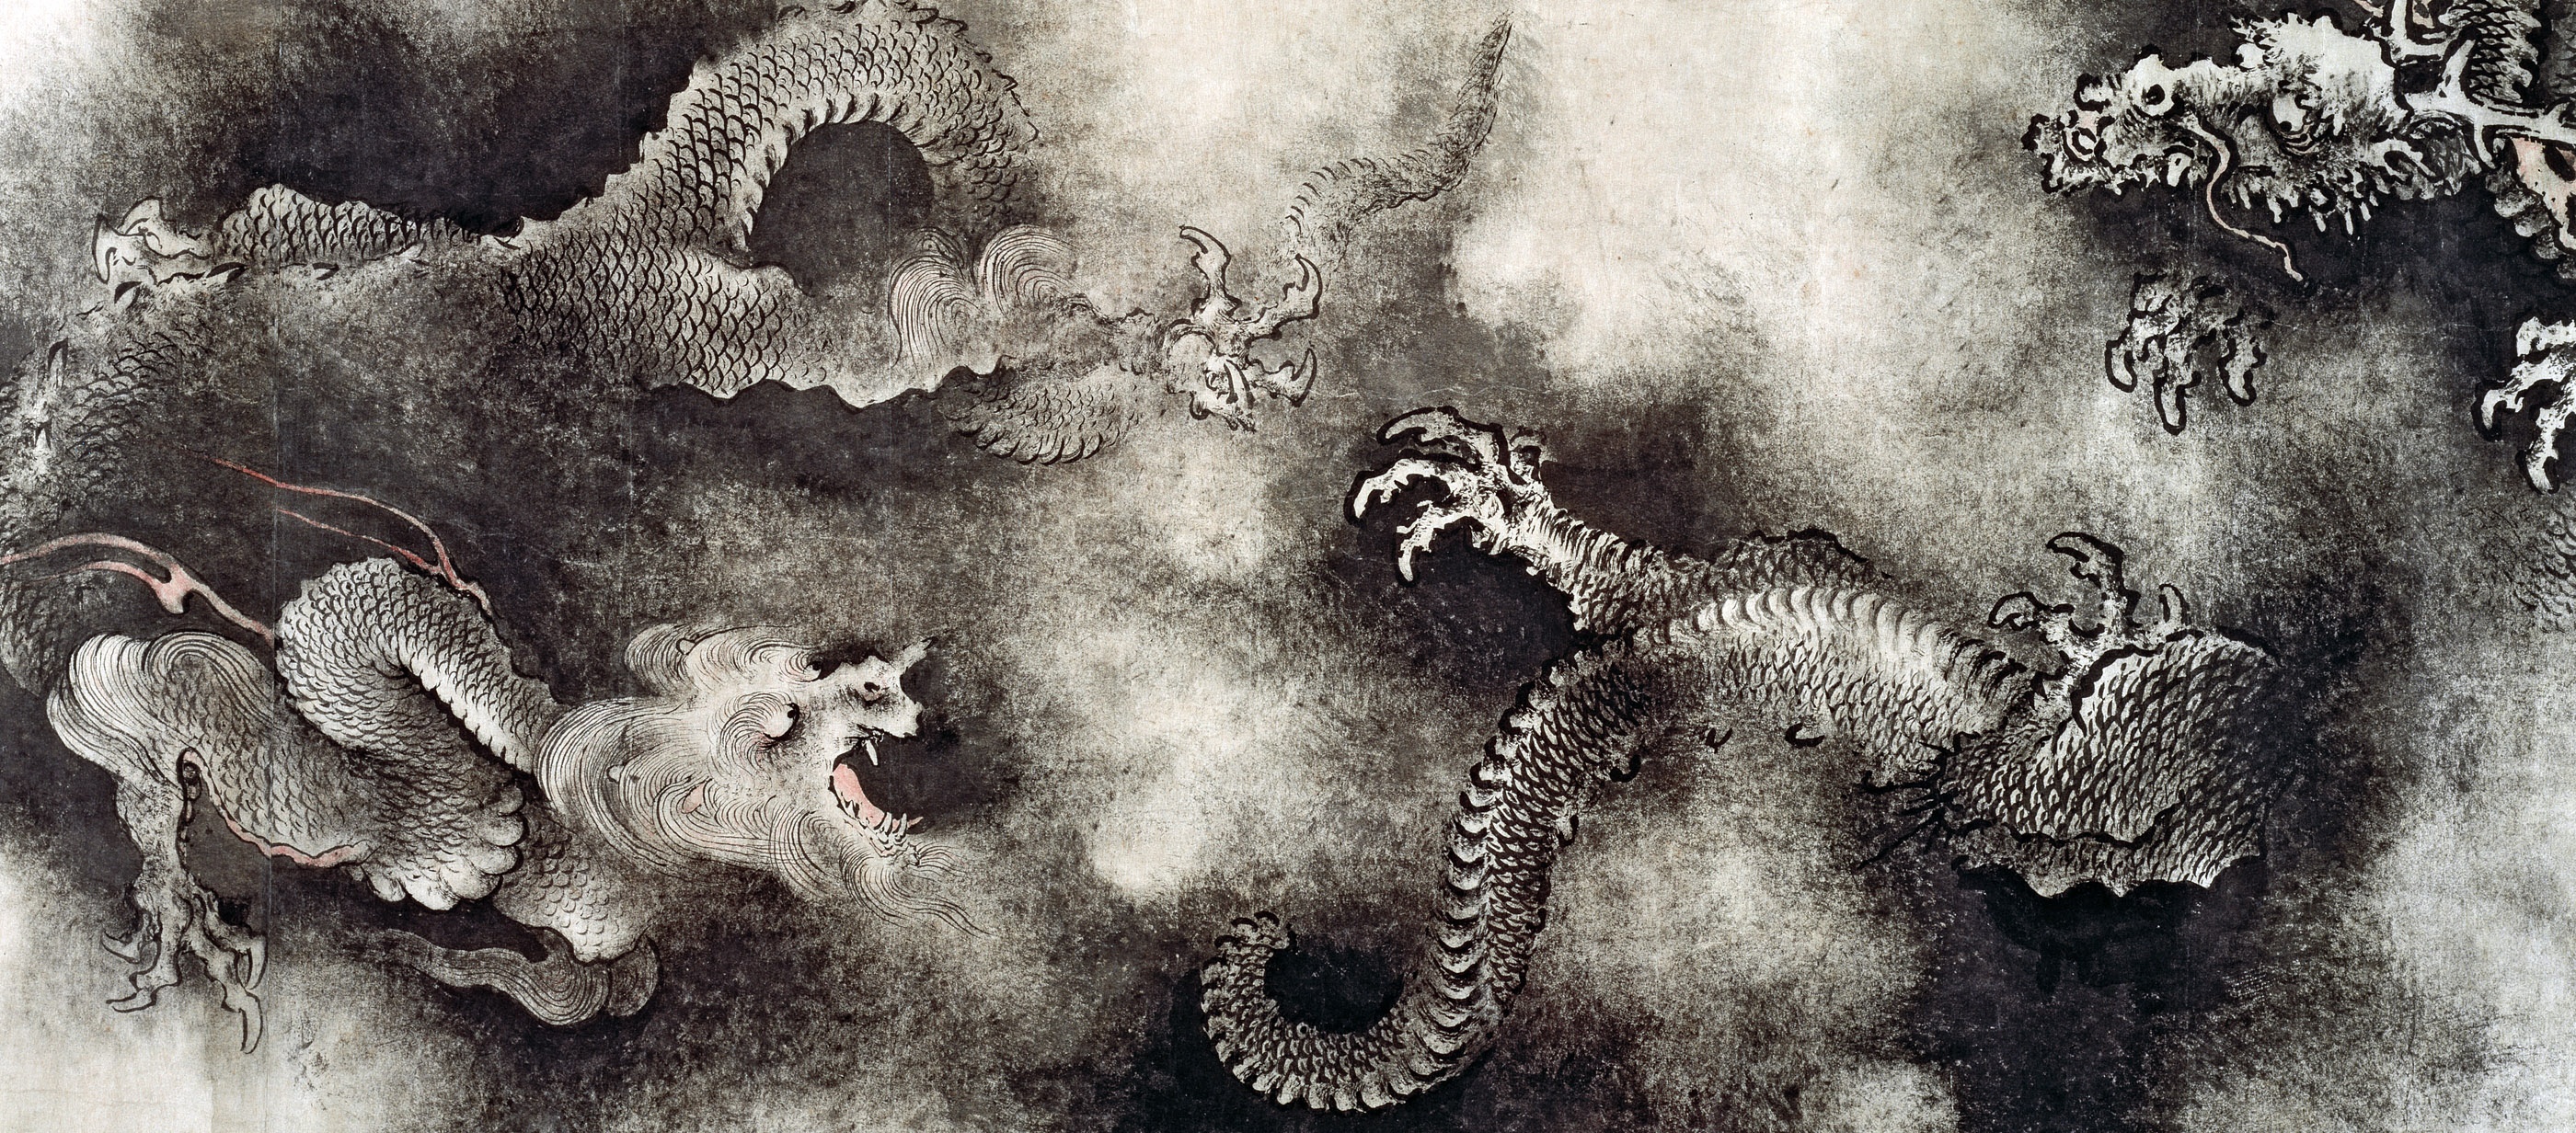 Nine Dragons (detail), by Chen Rong, 1244.